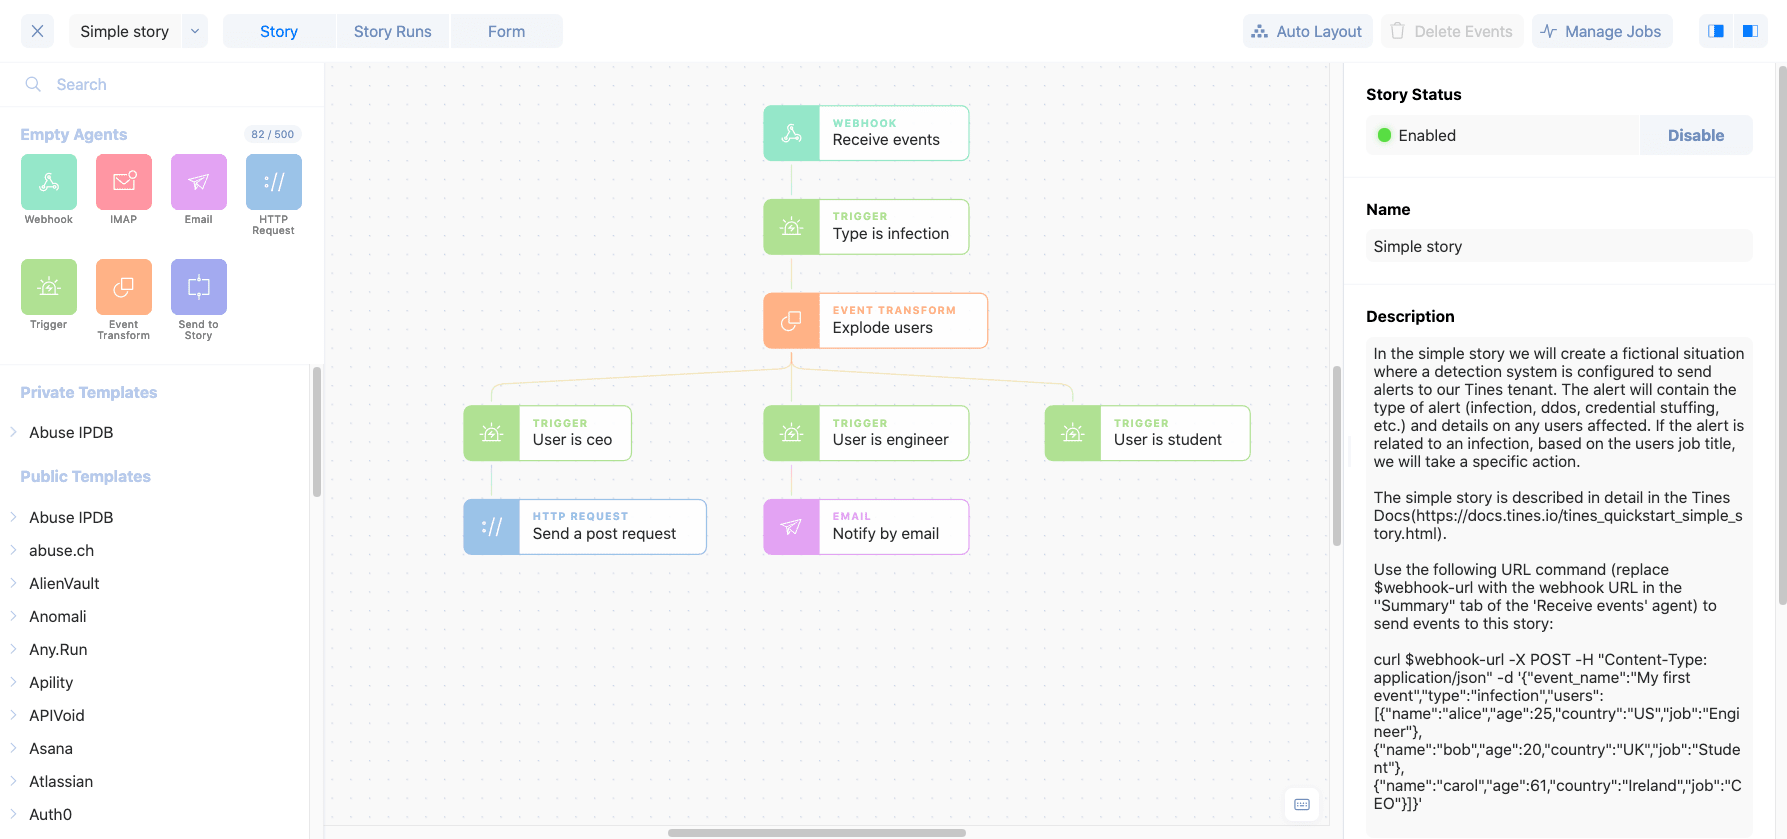 Simple story action event flow